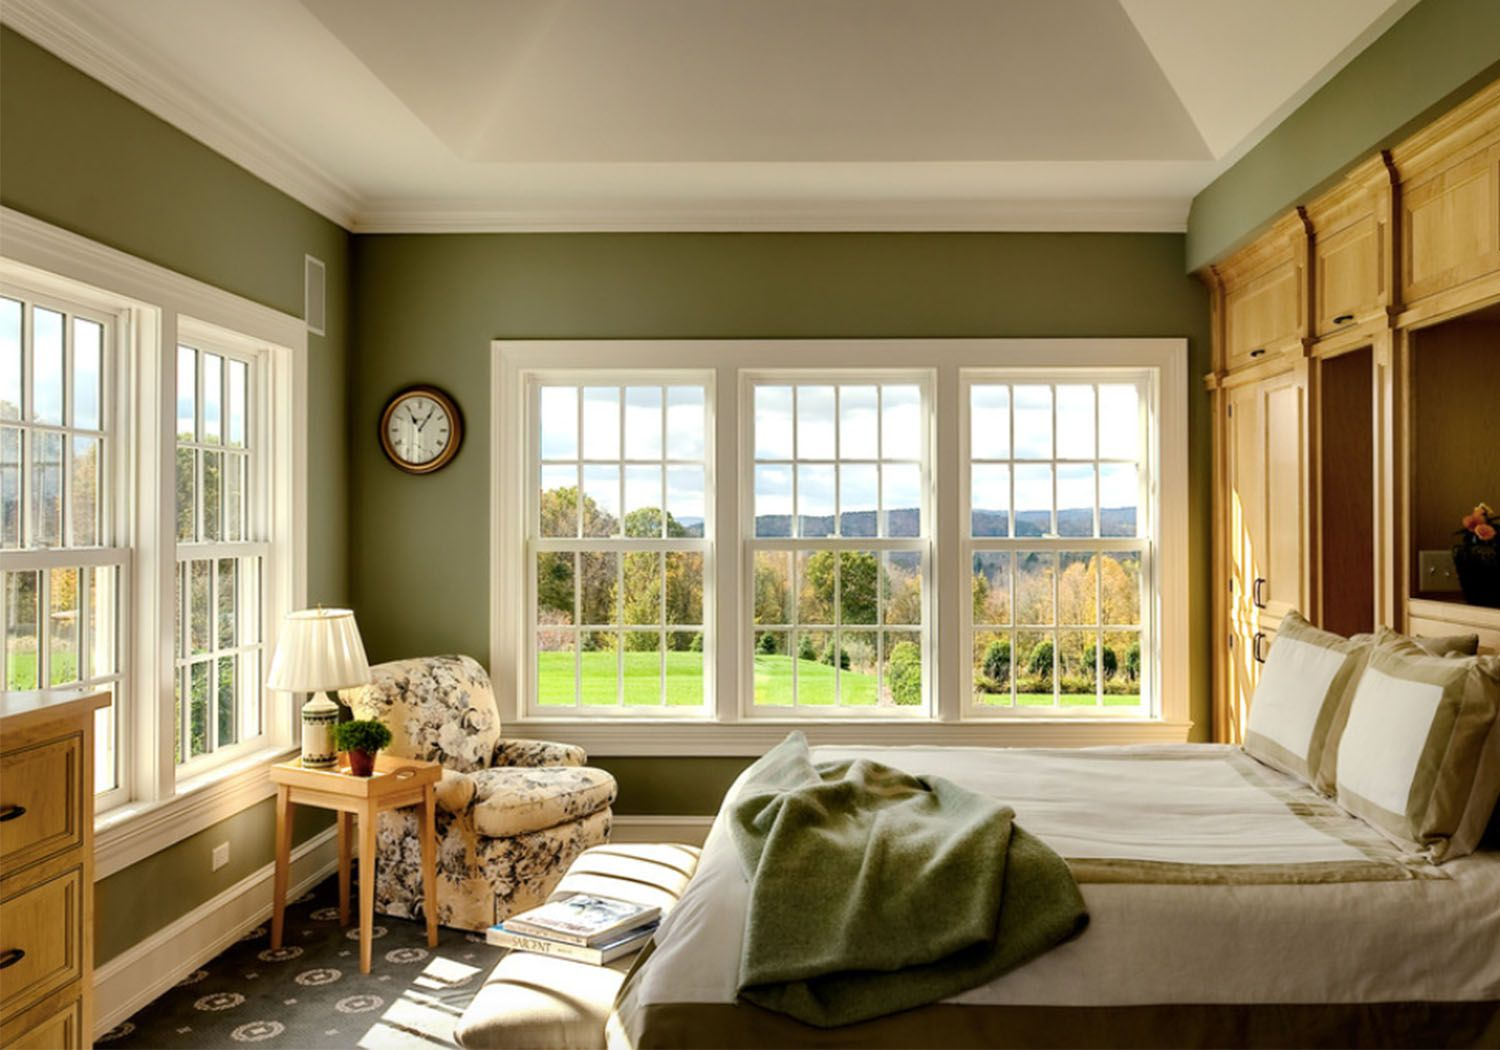 Soft Olive Green Walls Complement The Wooden Furnishings Floral Print Armchair And Green Green Master Bedroom Green Bedroom Colors Traditional Bedroom Design